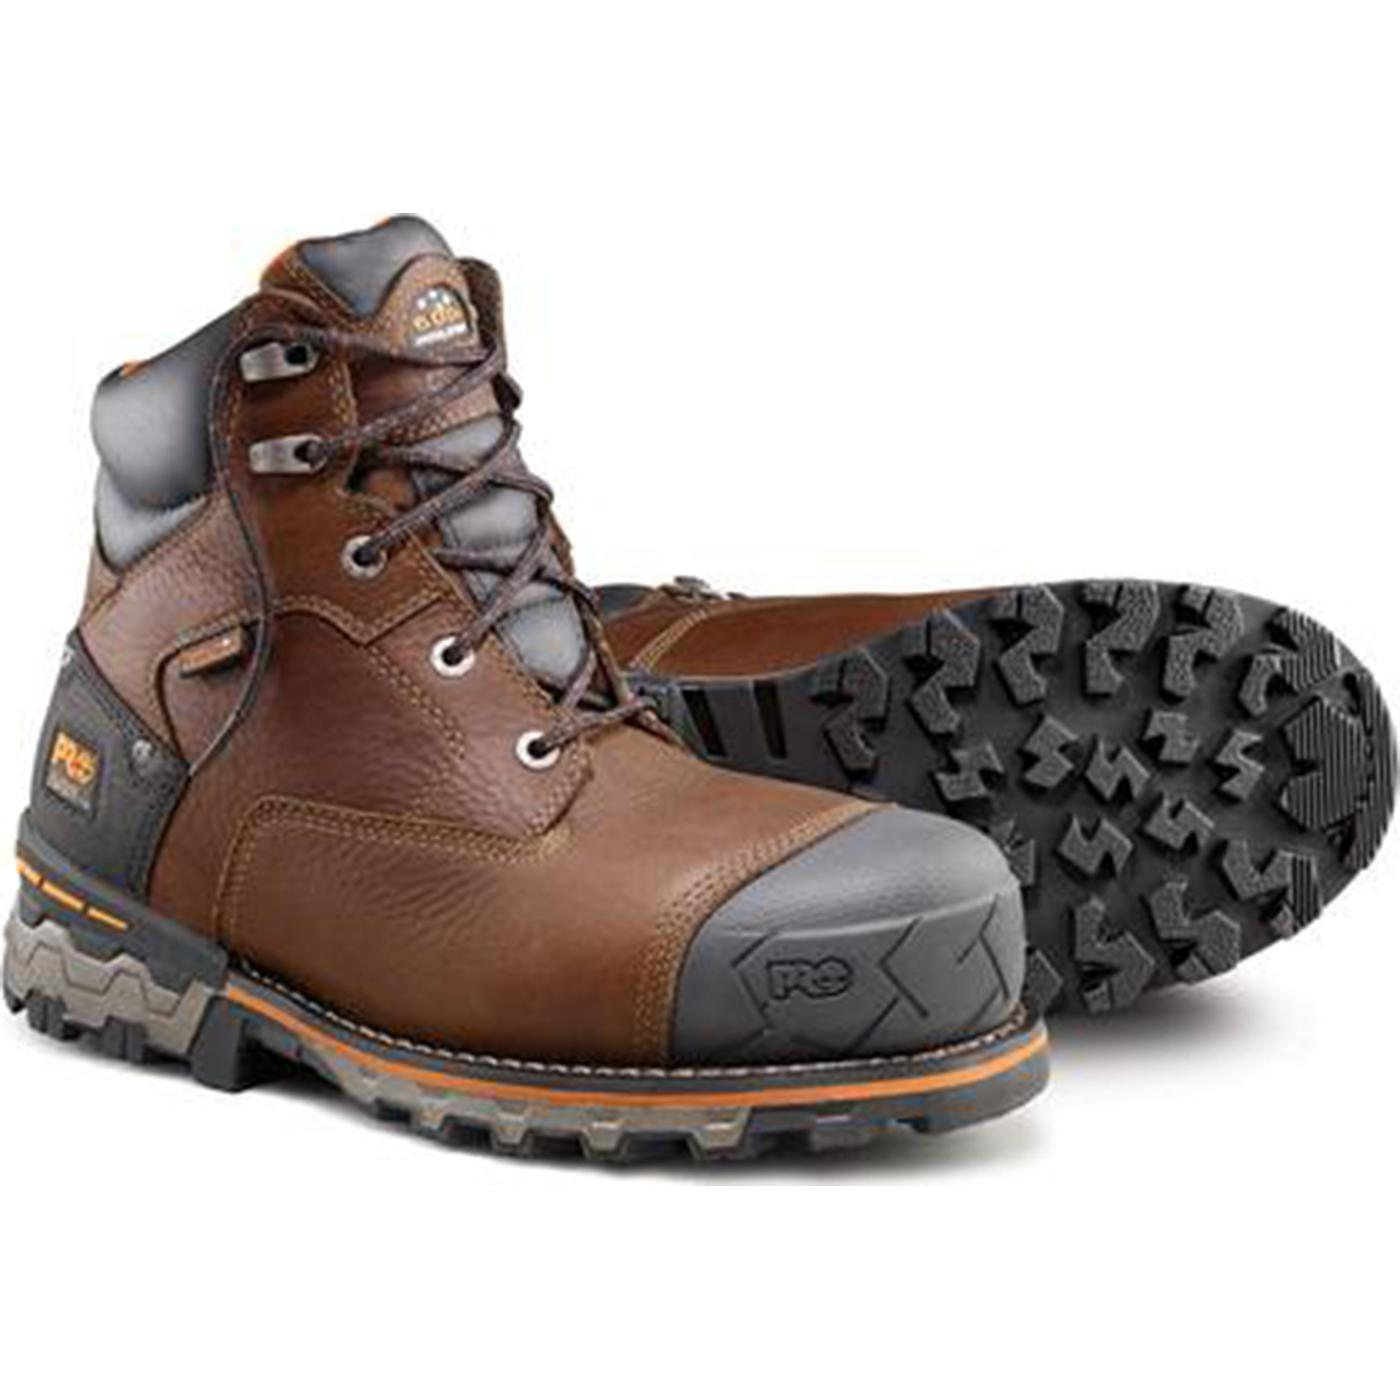 Buy KEEN Utility Men's Flint Mid Work Boot and other Industrial & Construction Boots at damascustopboutique.tk Our wide selection is eligible for free shipping and free returns.